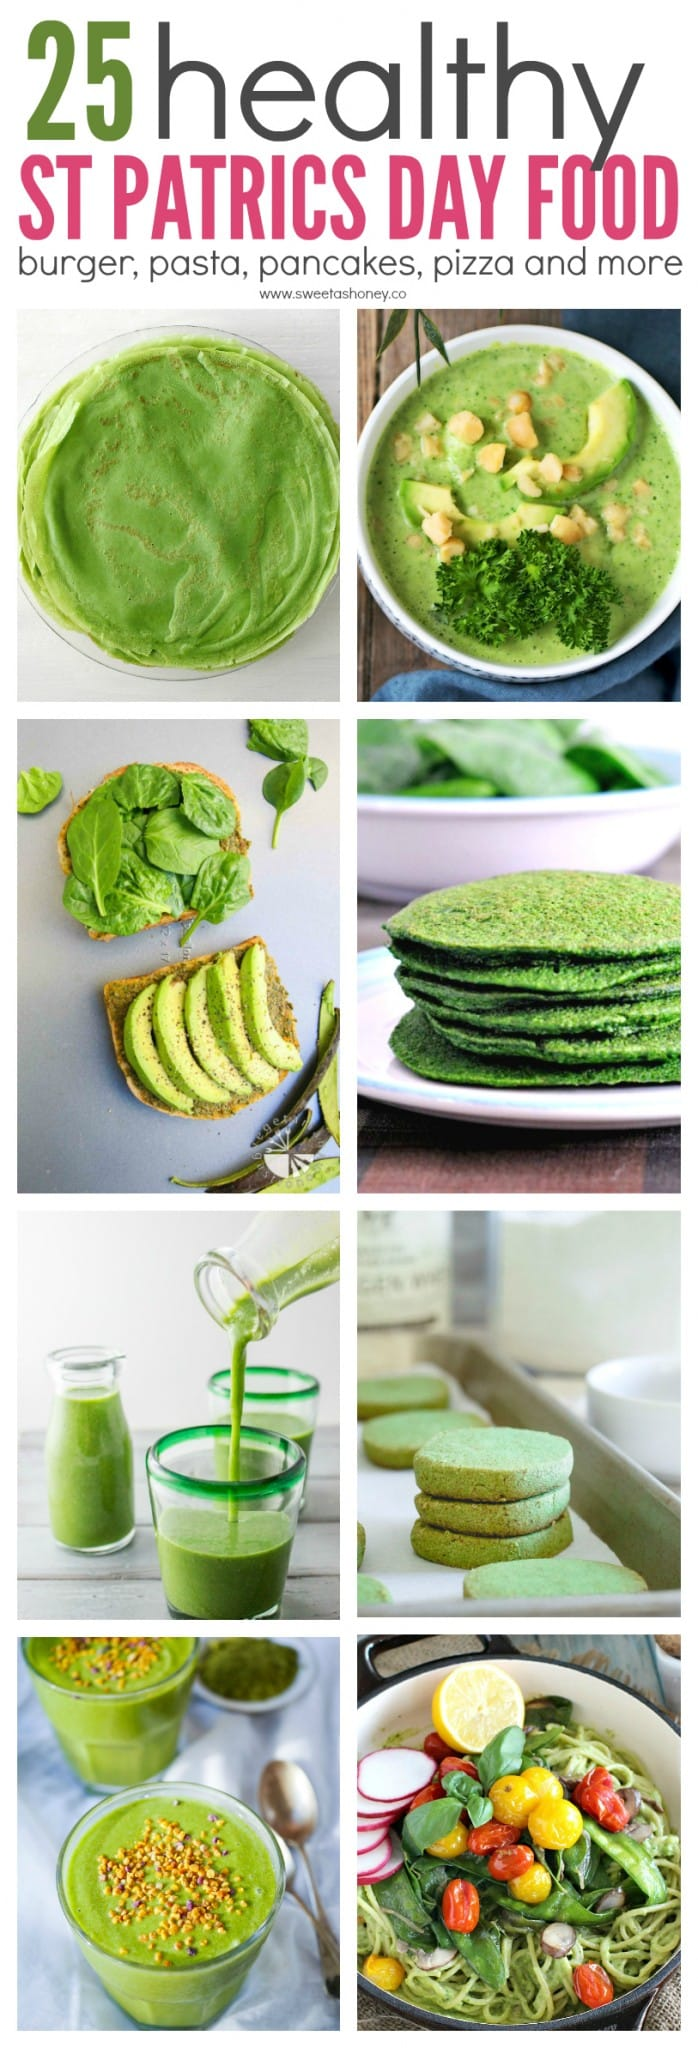 25 Healthy Green Recipe to Celebrate St Patrick's Day